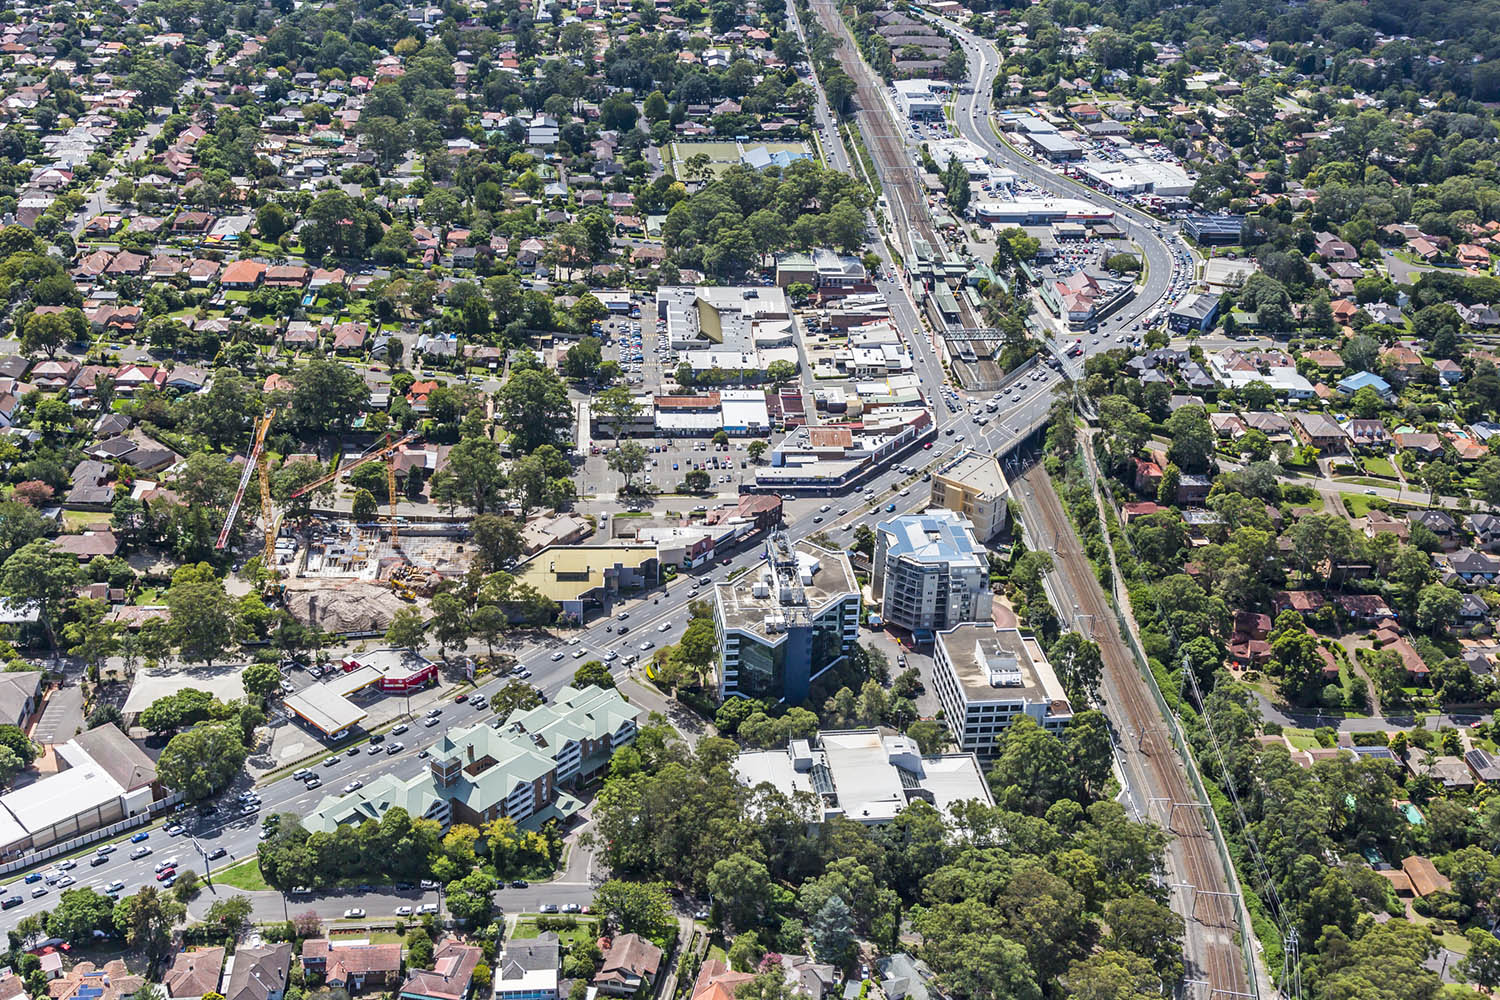 The Pennant Hills building has a net lettable area of 7,124sqm, EG Funds hope it will benefit from the $2 billion NorthConnex infrastructure project.